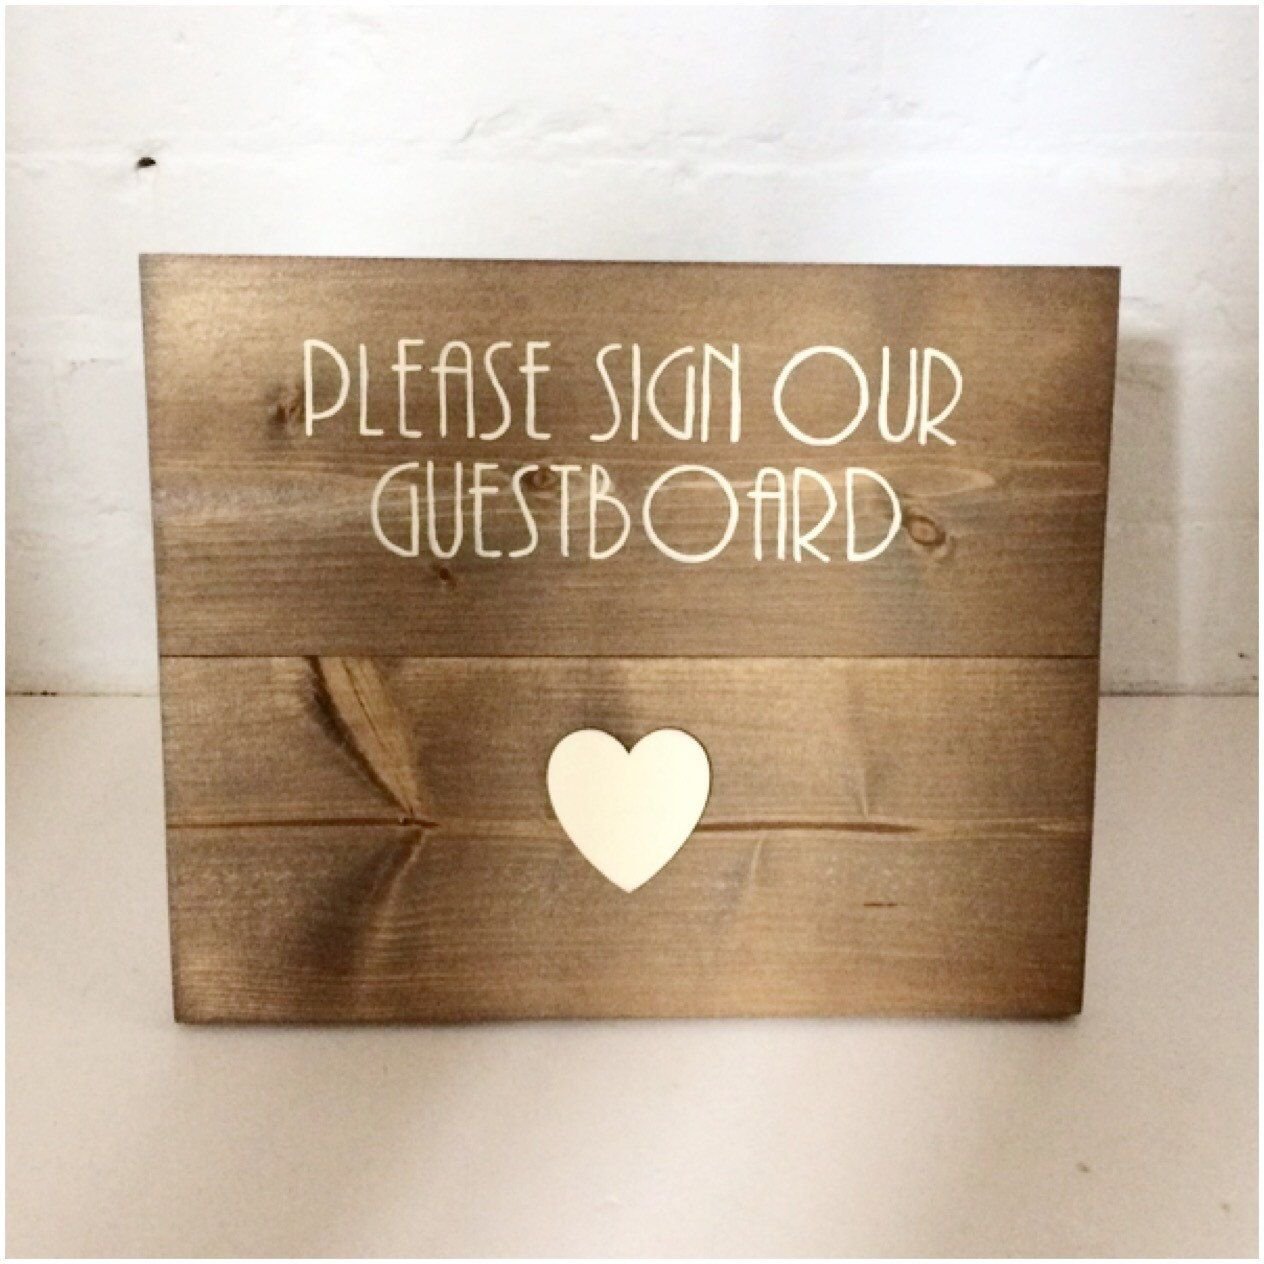 Please Sign Our Guest Book Wedding Wooden Rustic For Ideas